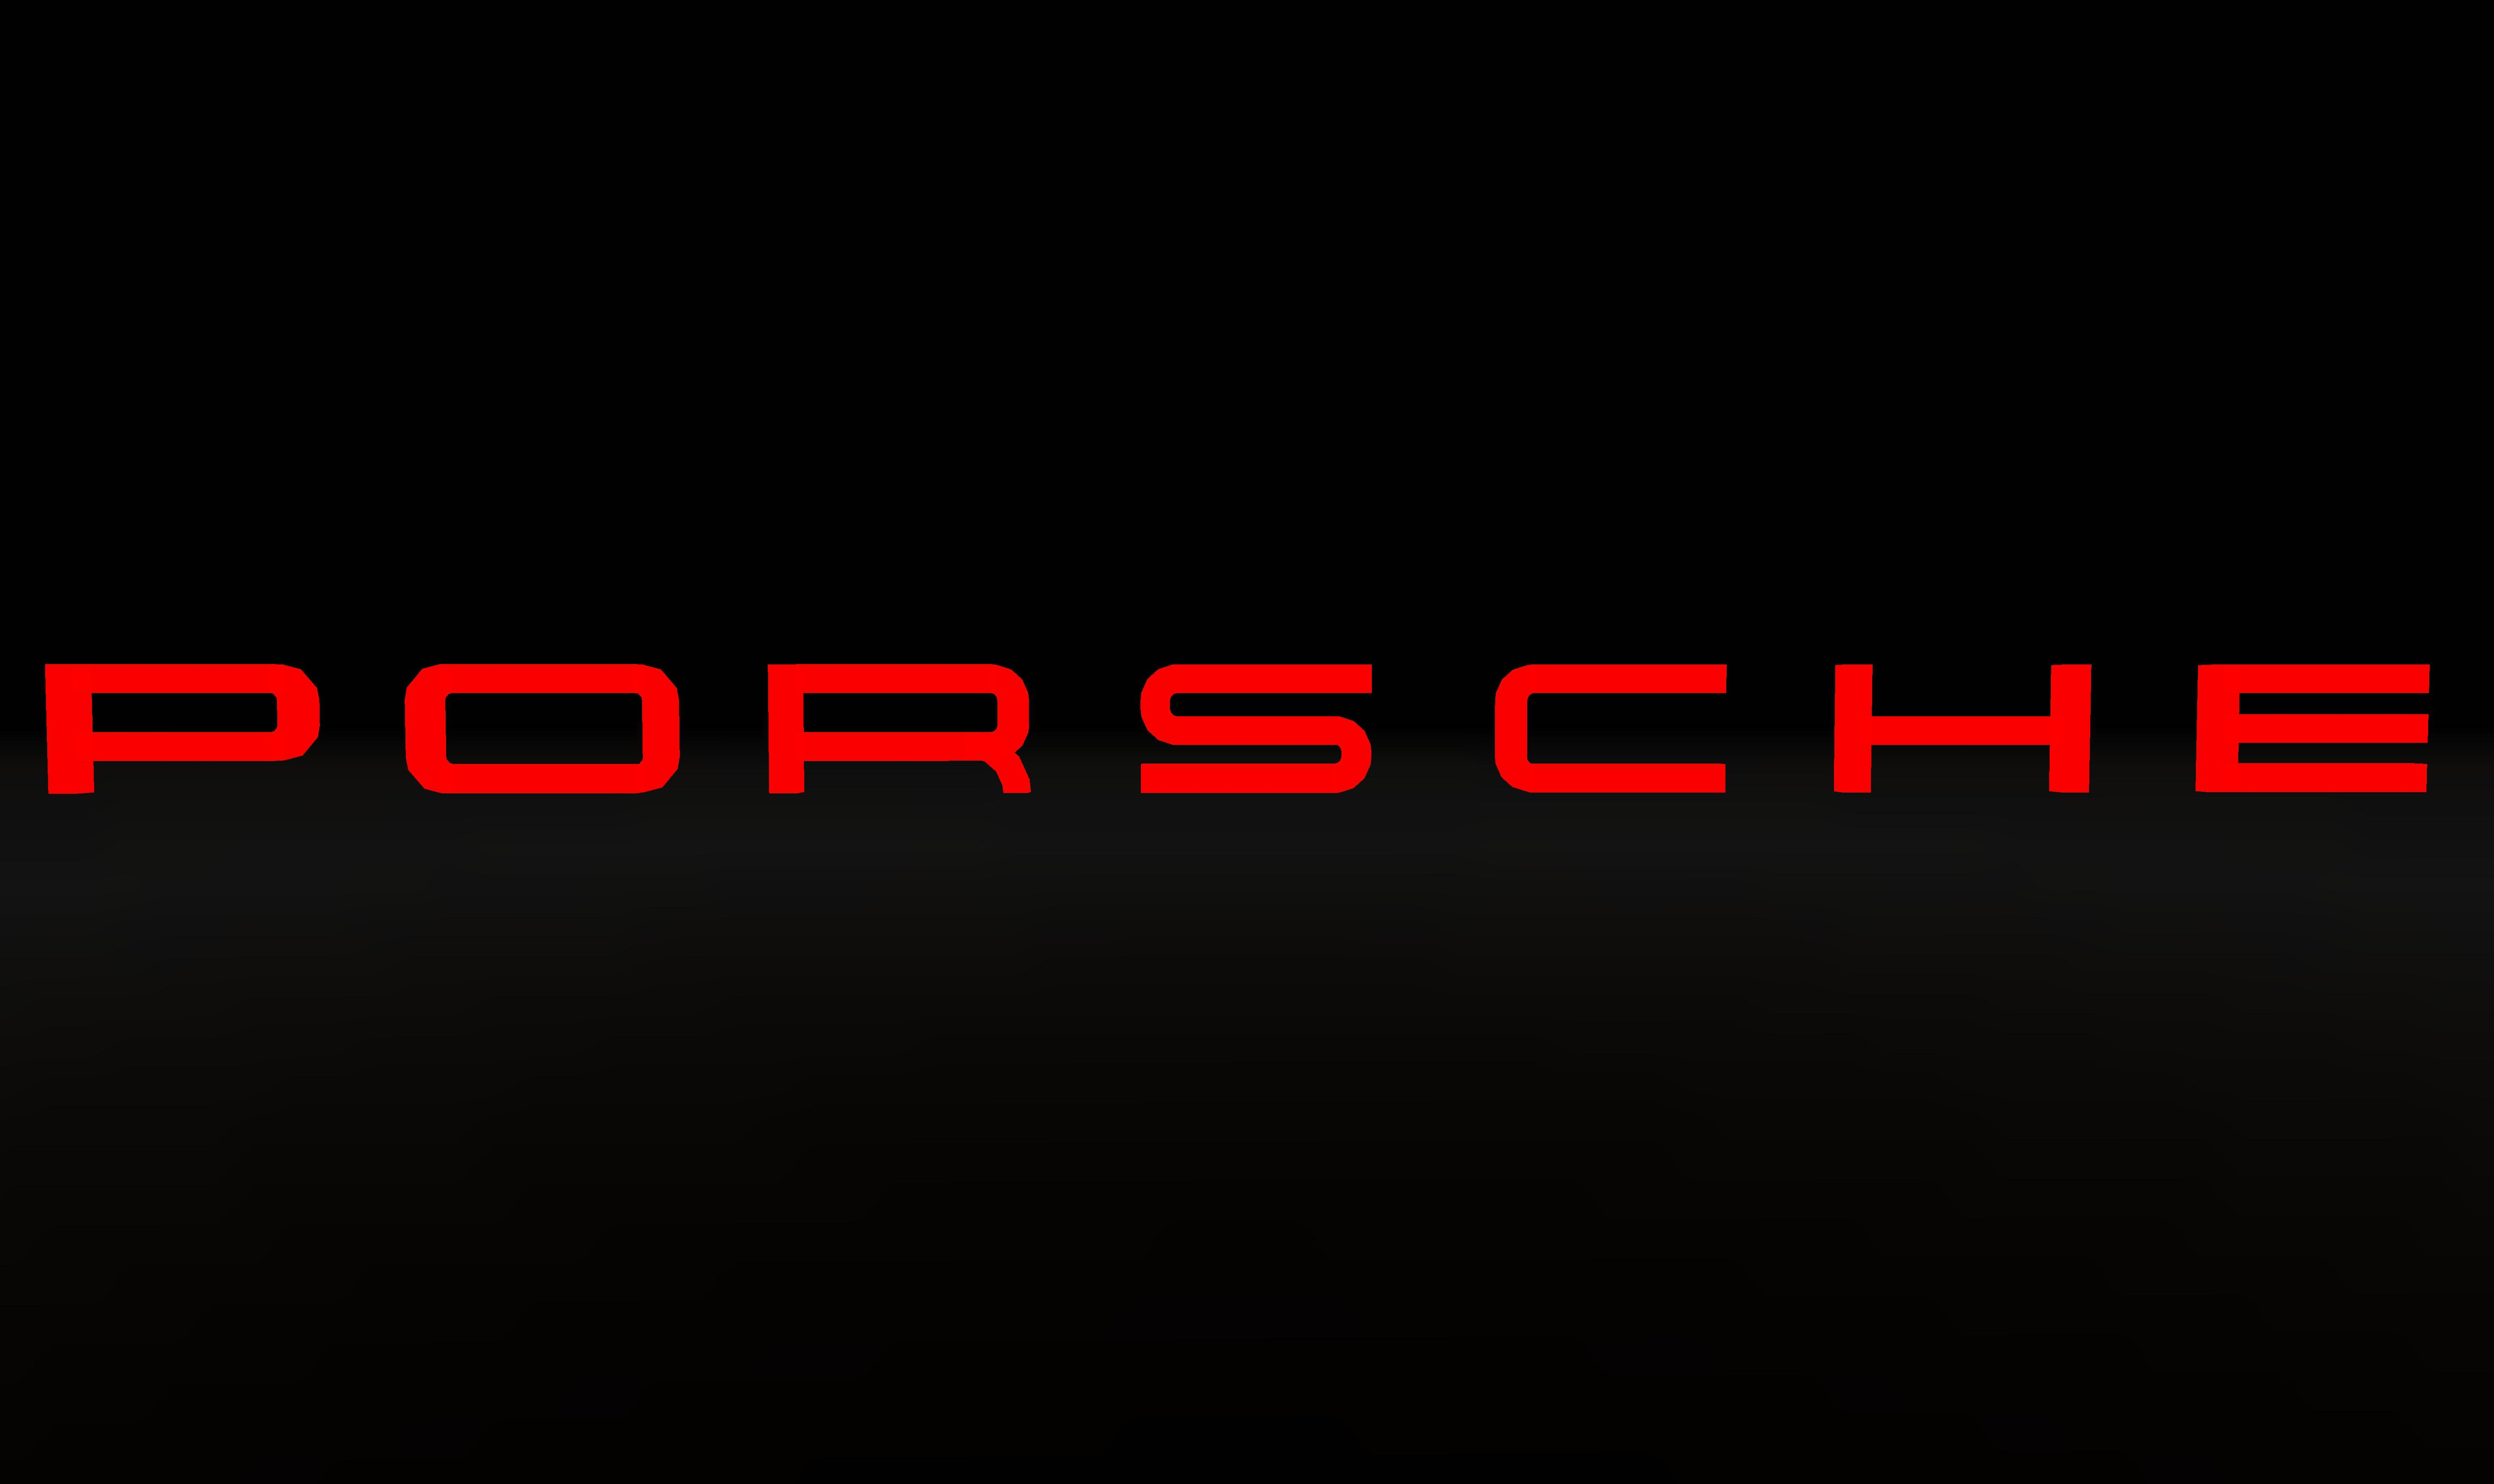 H Wallpapers Porsche Logo Iphone Symbol Hd 640x1136